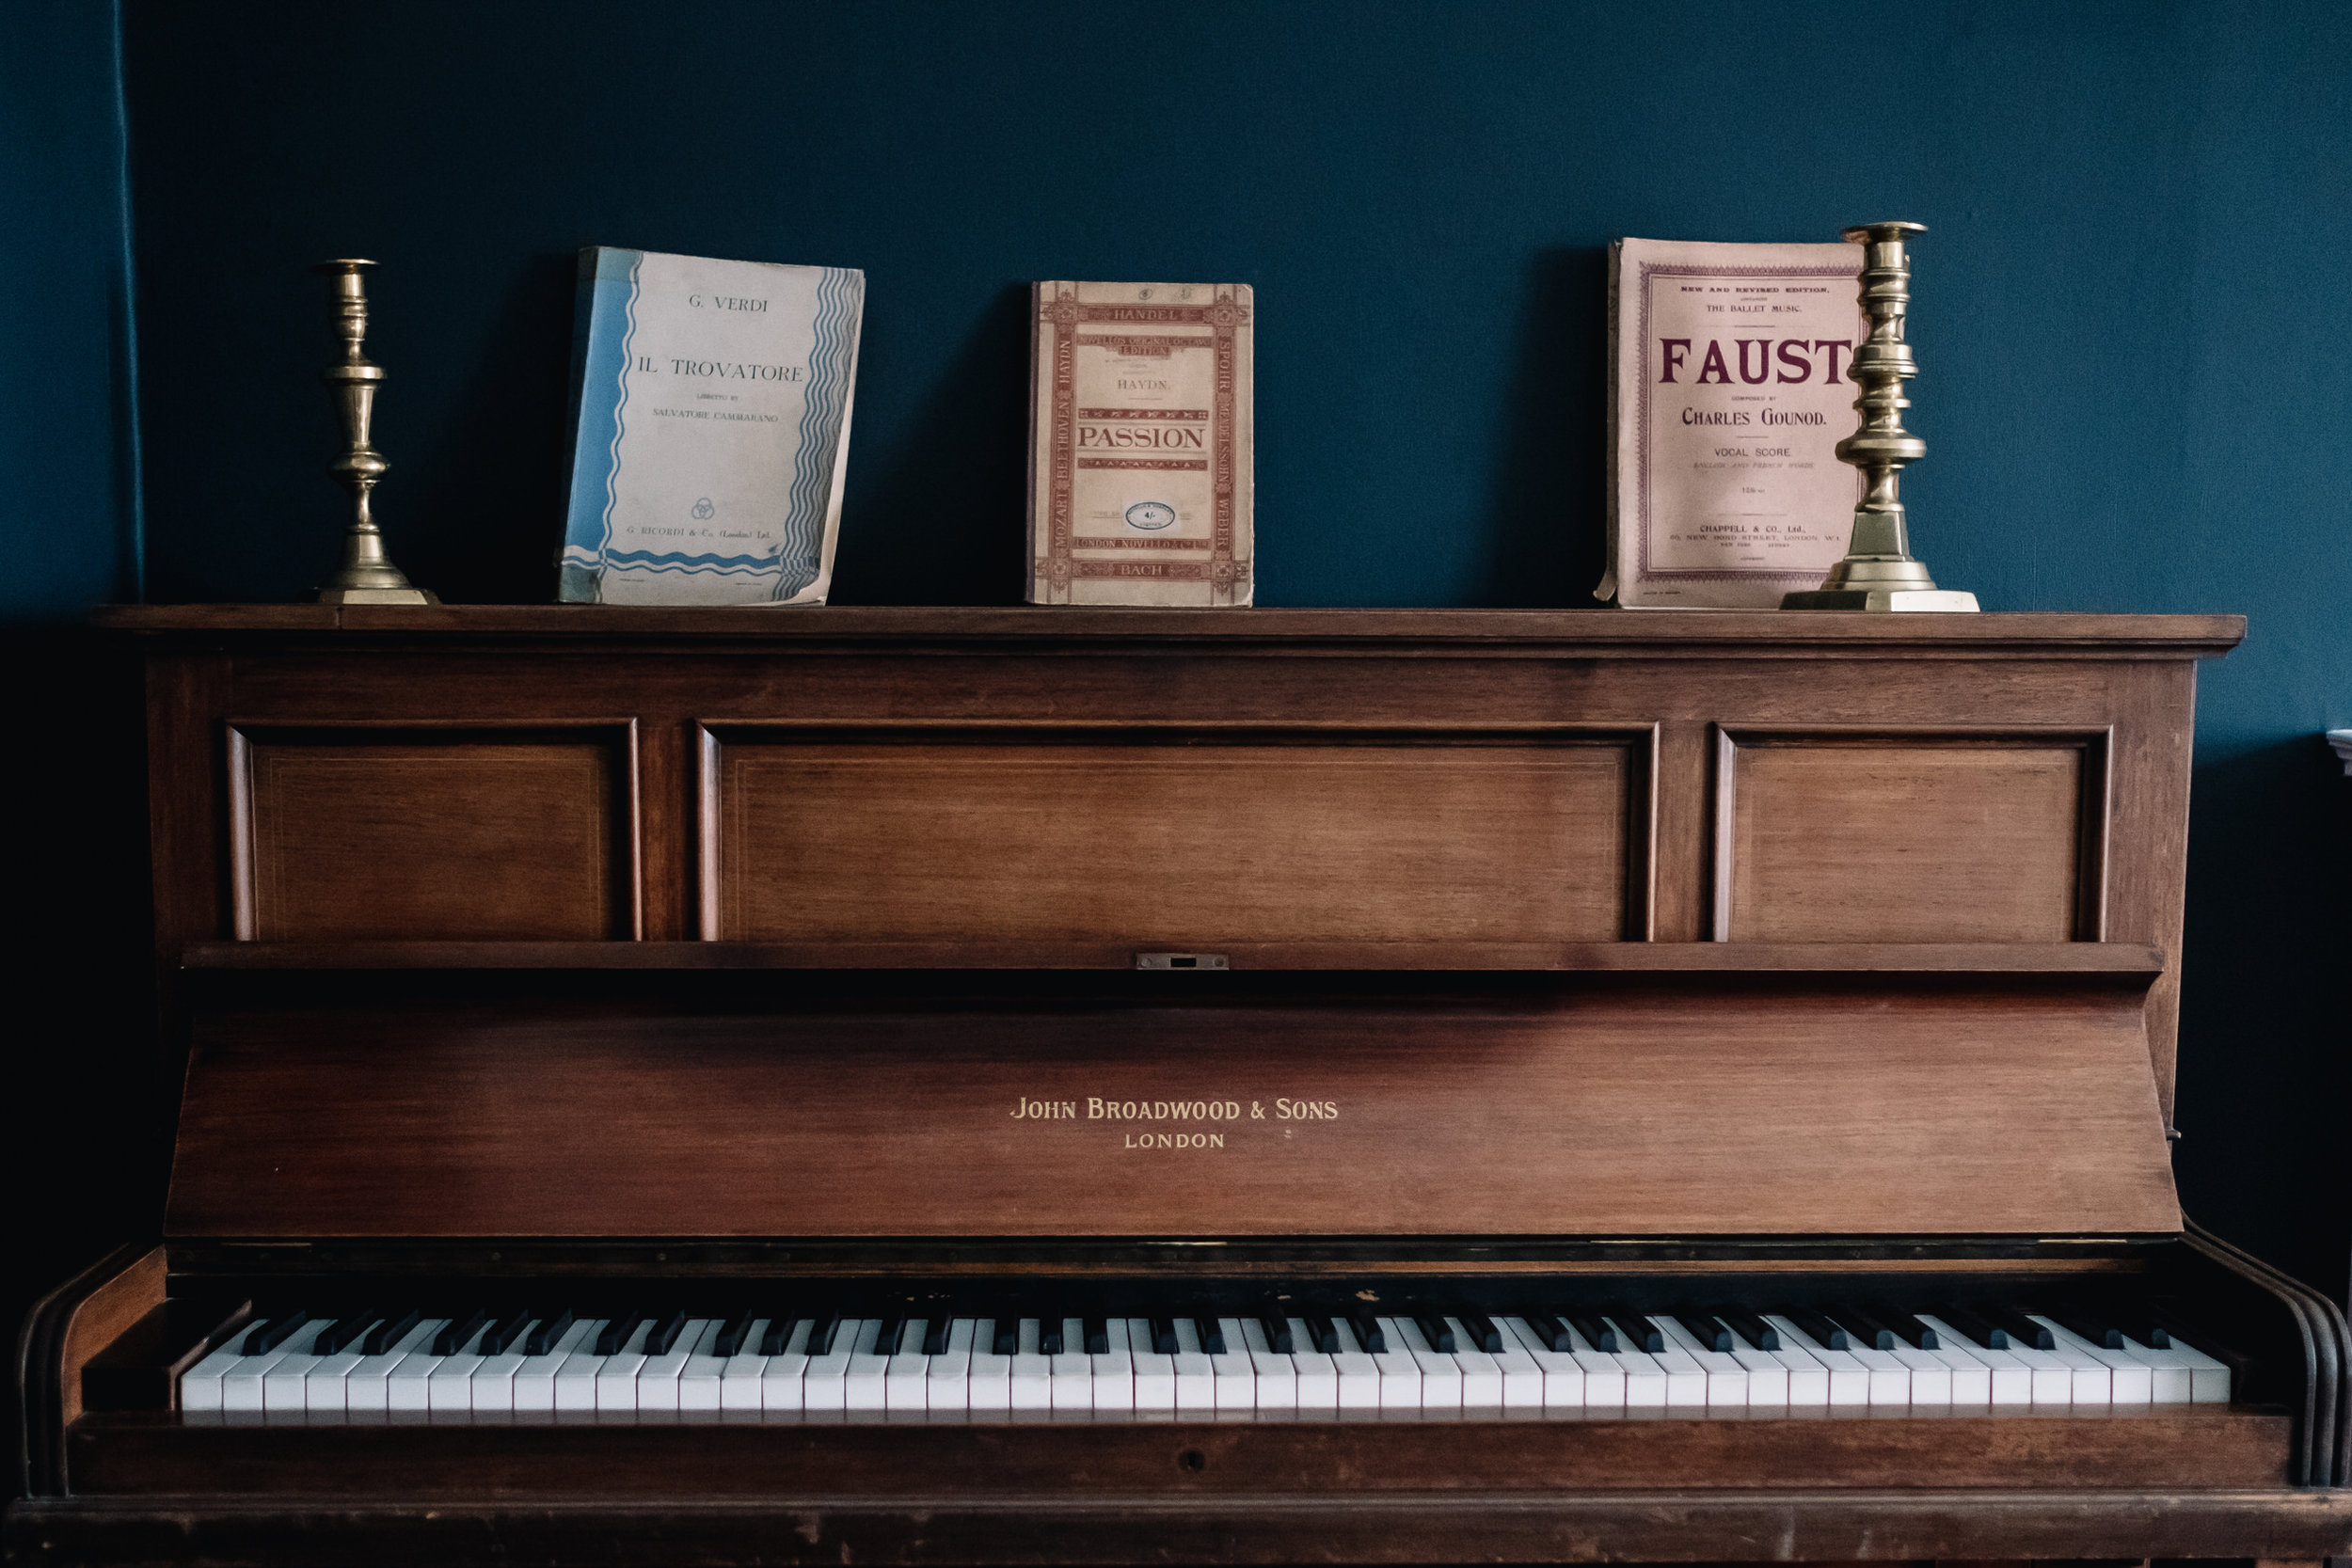 Piano in a blue room